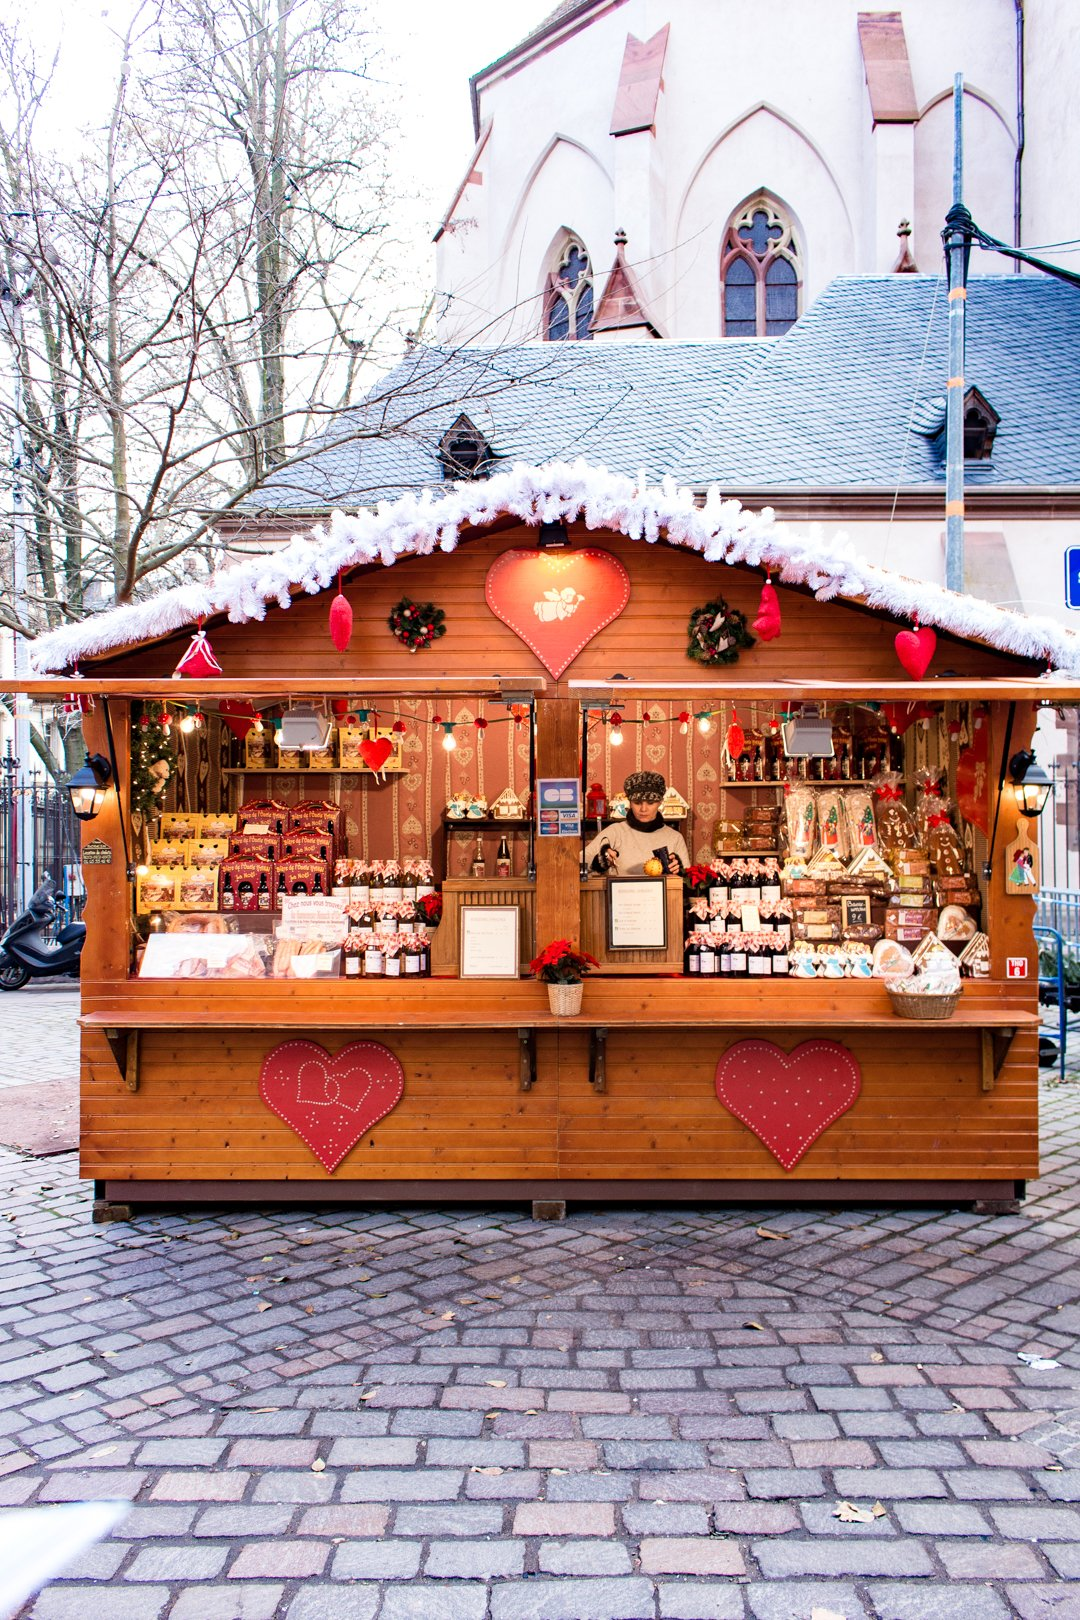 Marche de Noel- 7 French Christmas Traditions to Adopt by Paris Perfect